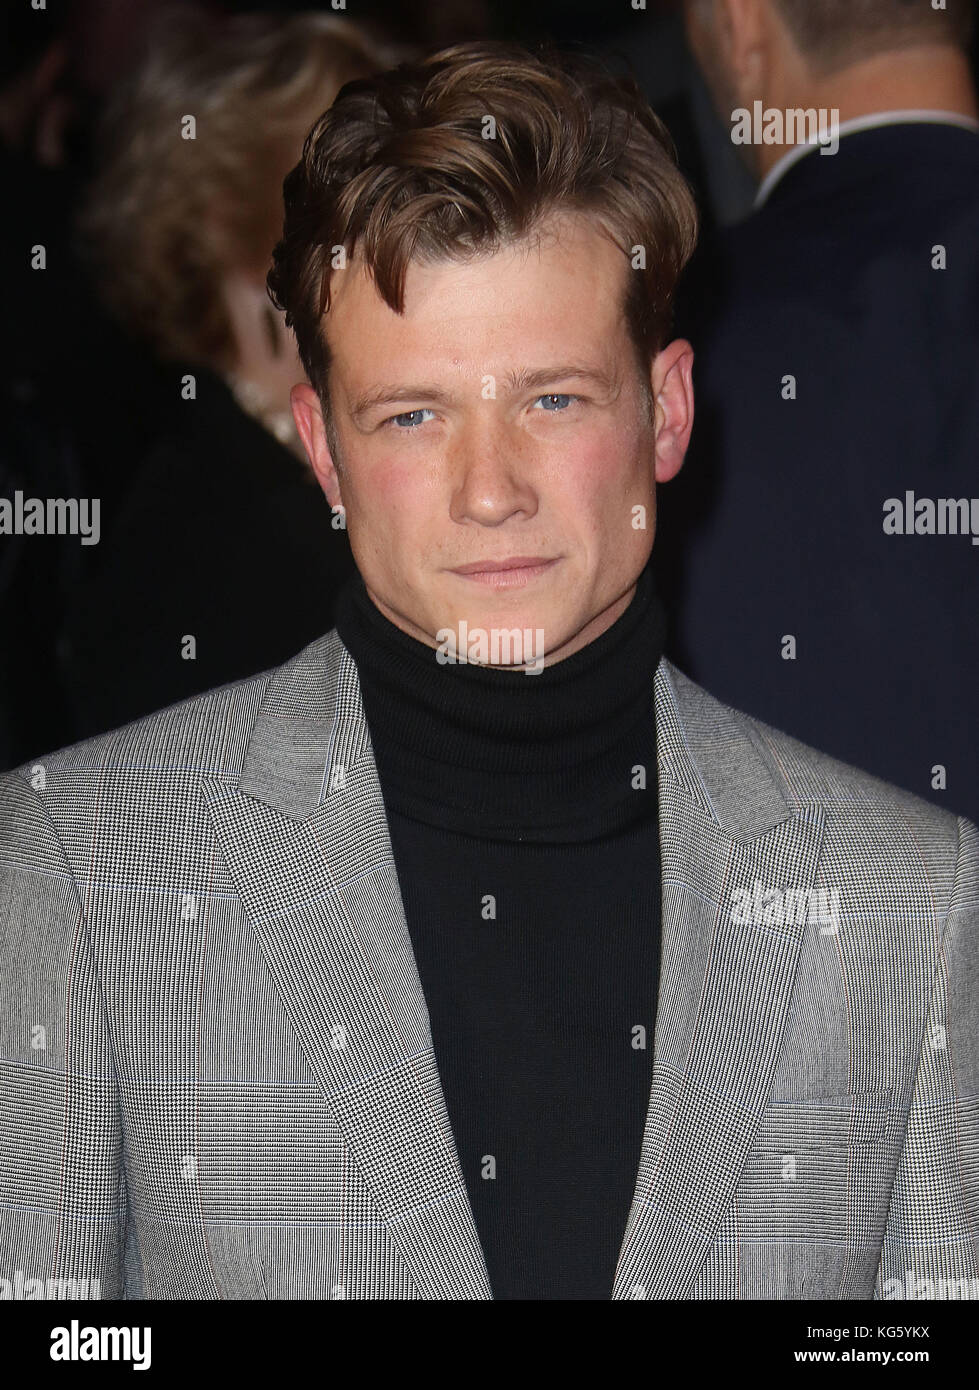 Oct 04, 2017 - Ed Speleers attending 'Breathe' European Premiere, Odeon Leicester Square in London, England, - Stock Image